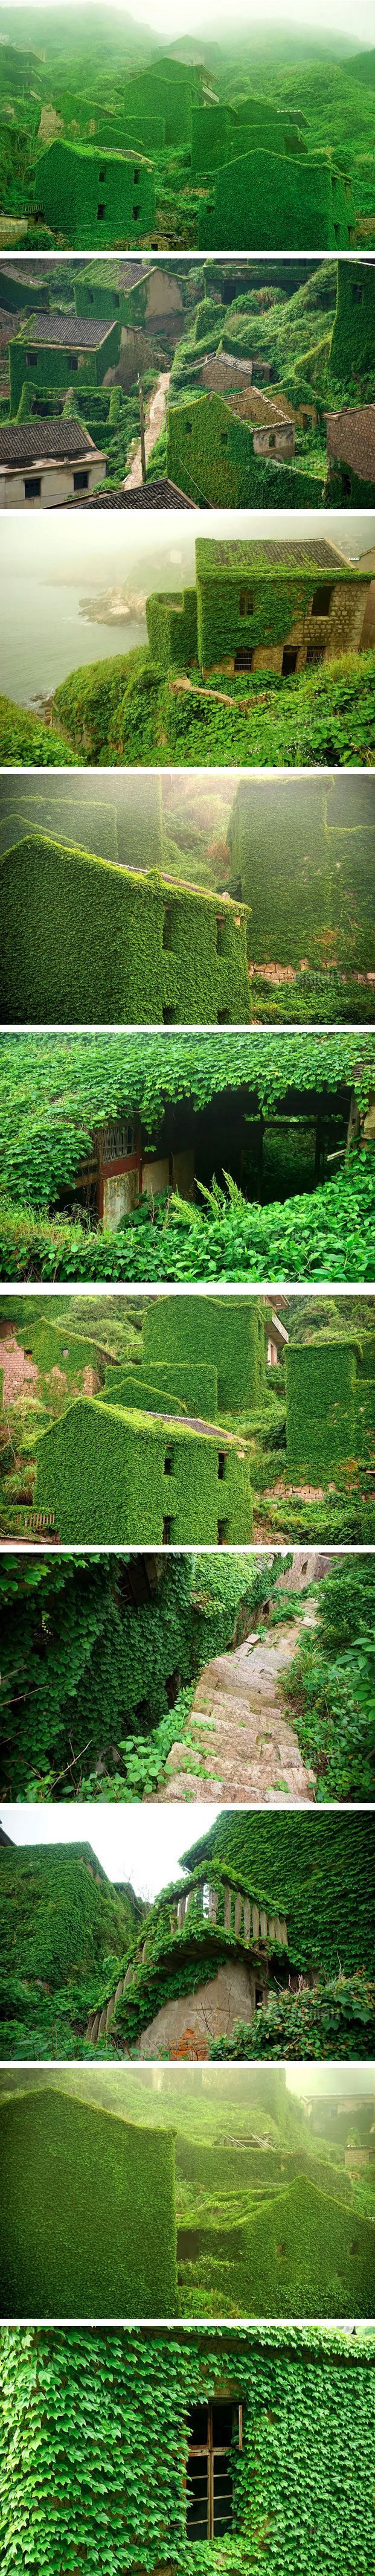 *I'd so live here...* Shengsi, an archipelago of almost 400 islands at the mouth of China's Yangtze river, holds a secret shrouded in time – an abandoned fishing village being reclaimed by nature. These photos by Tang Yuhong, a creative photographer based in Nanning, take us into this lost village on Goqui island.